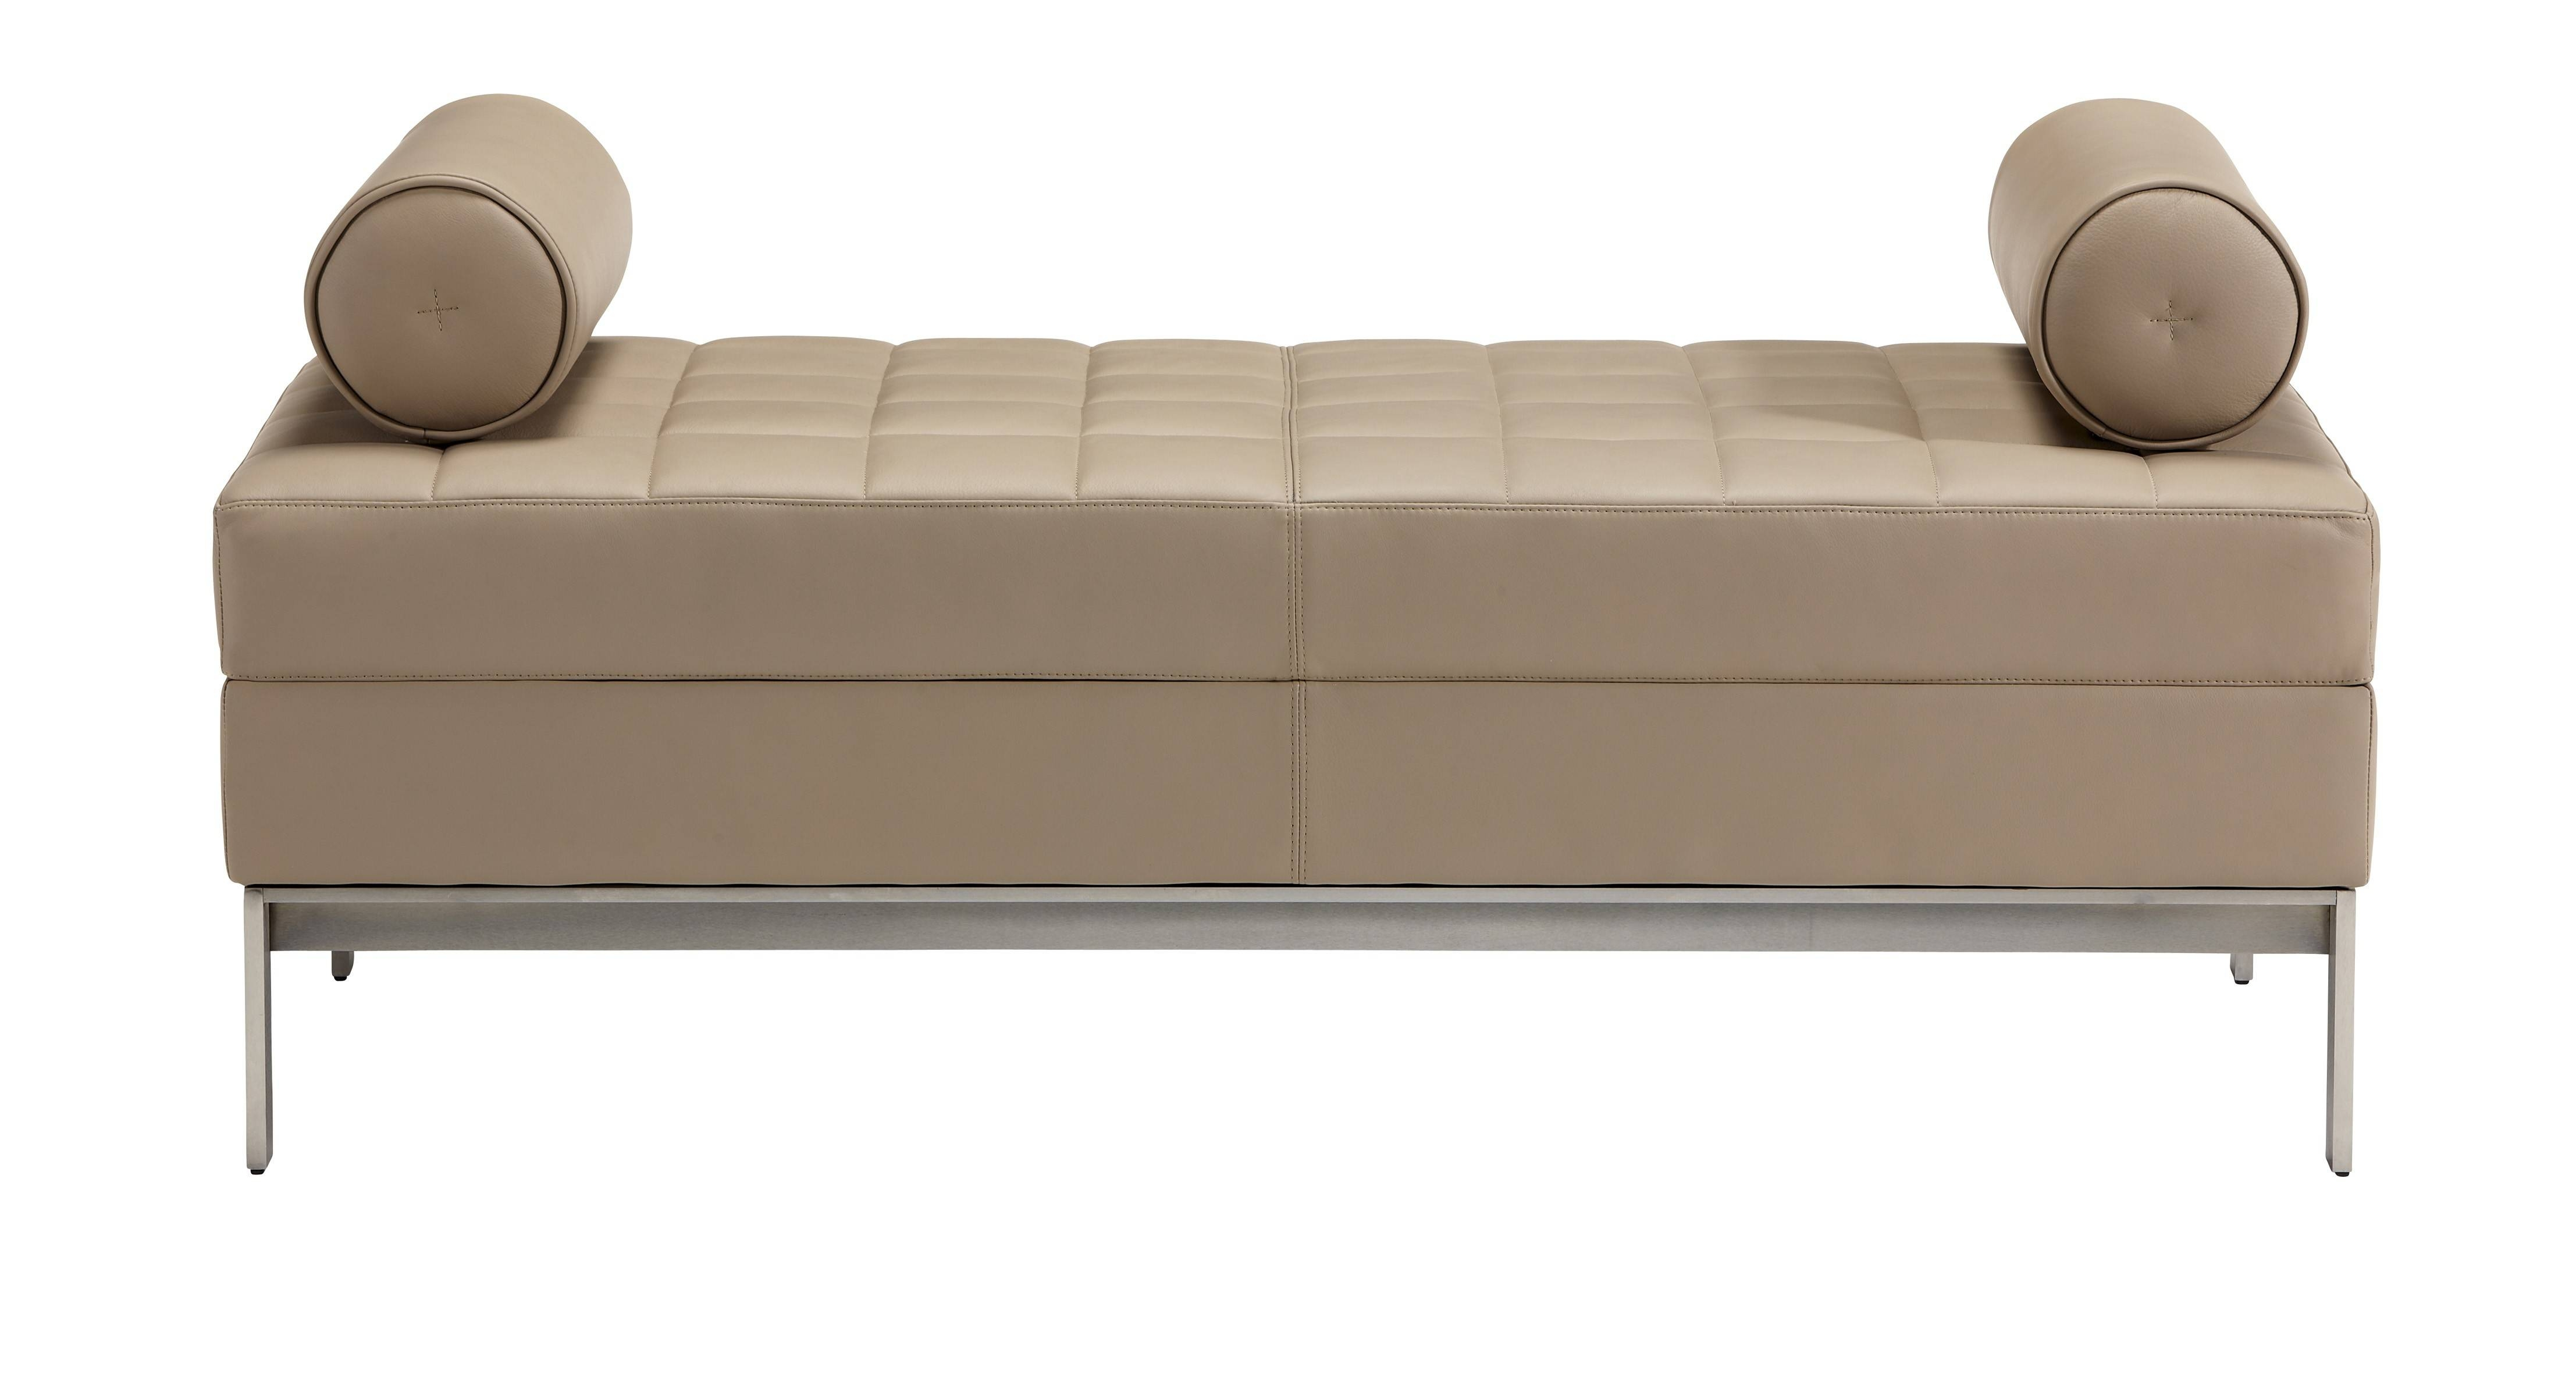 Millbrae Contract Social & Versatile Lounge Seating | Coalesse for Leather Bench Sofas (Image 19 of 30)